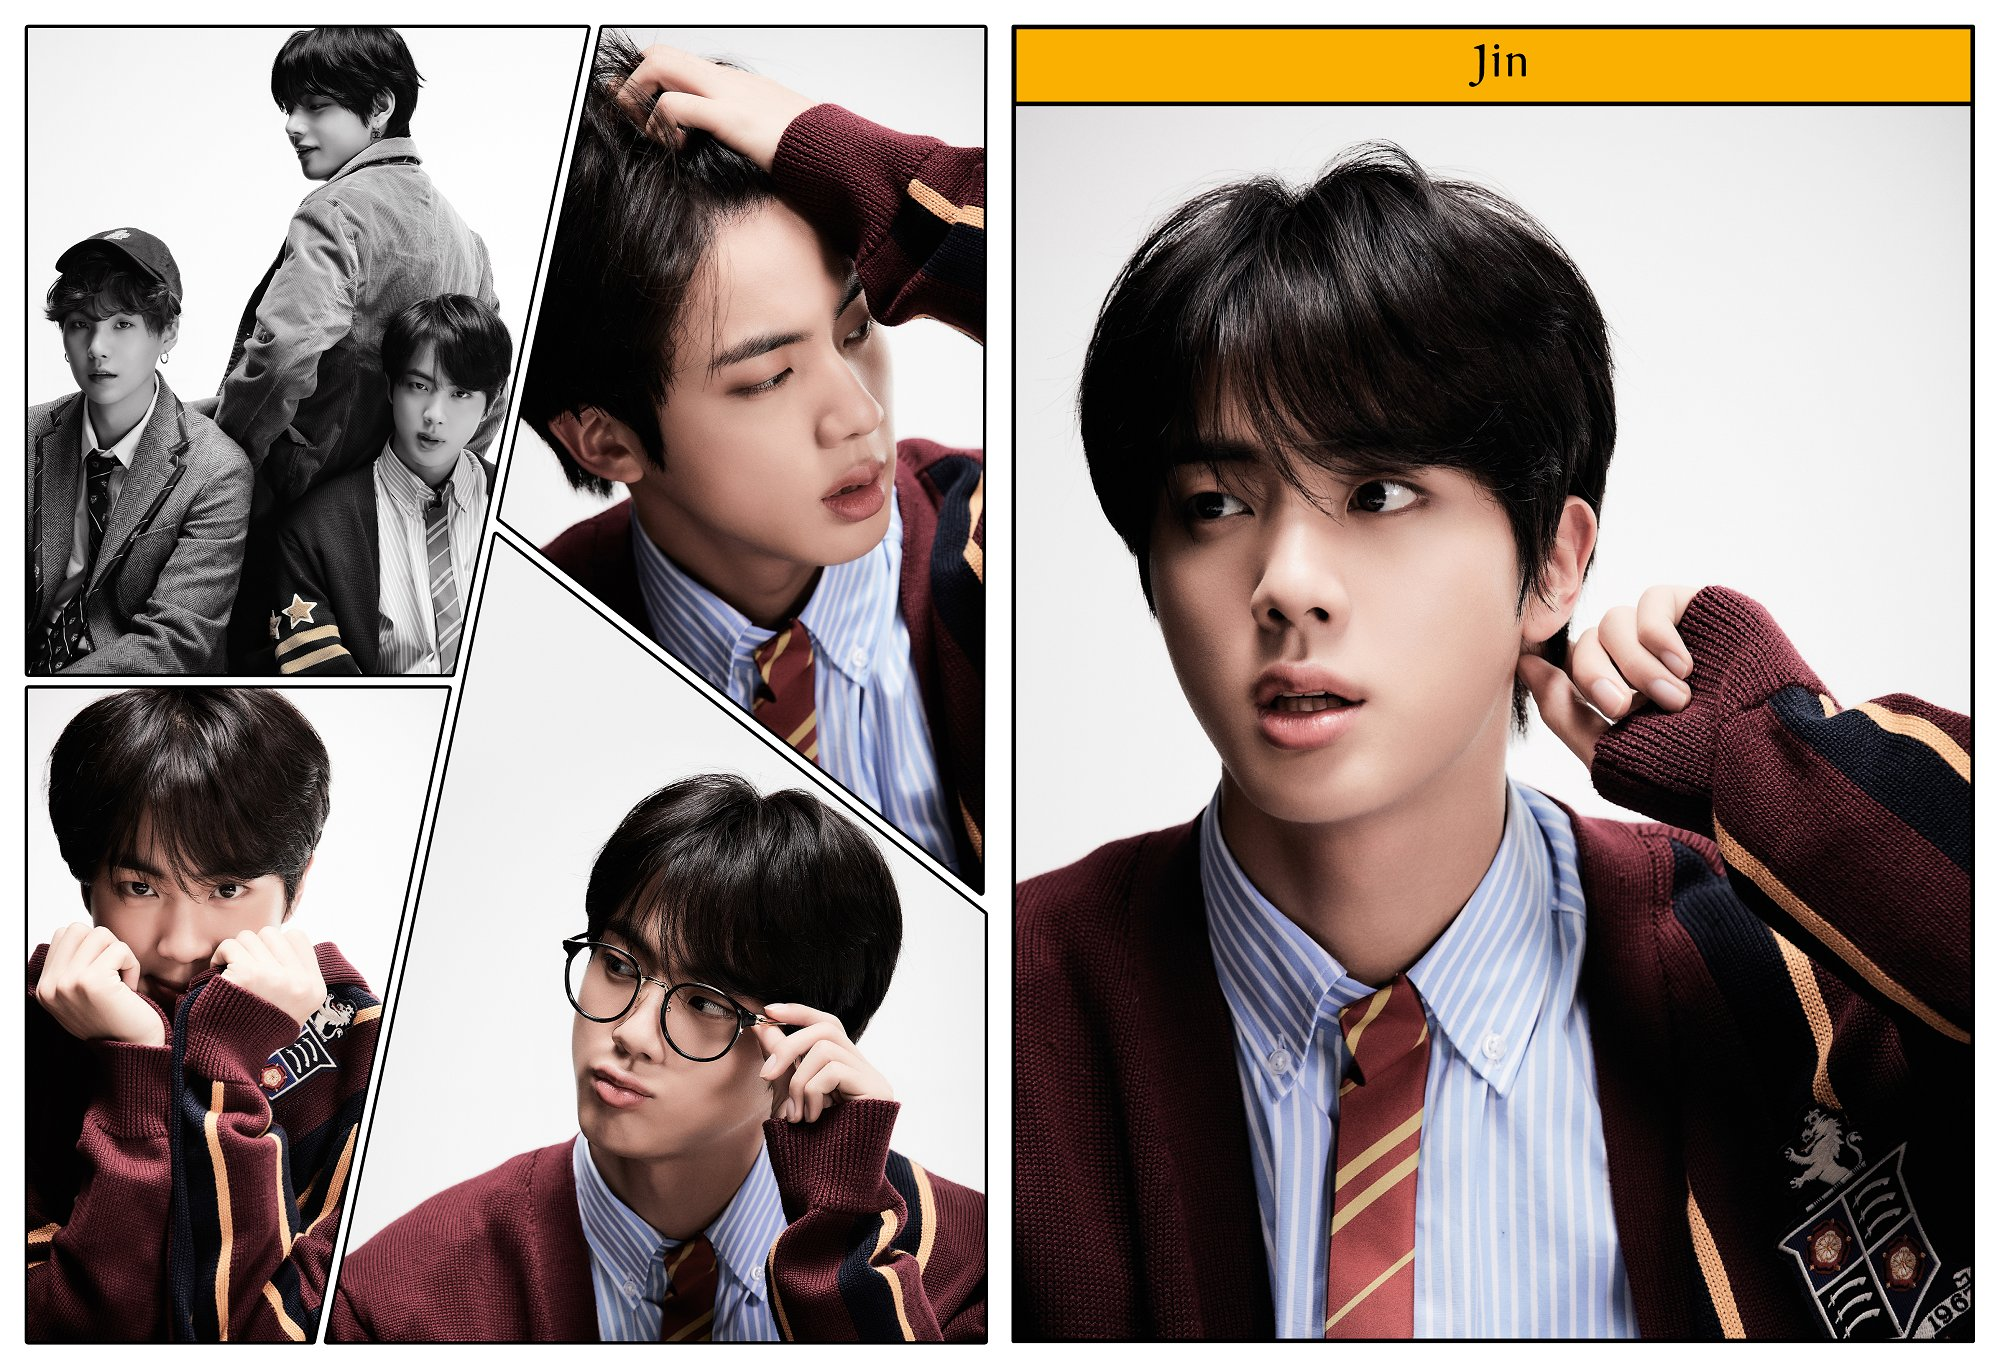 Jin BTS Rilis Konsep Foto Keempat untuk Album Map of The Soul: 7 - Definition of Happiness and Youth © Big Hit Entertainment